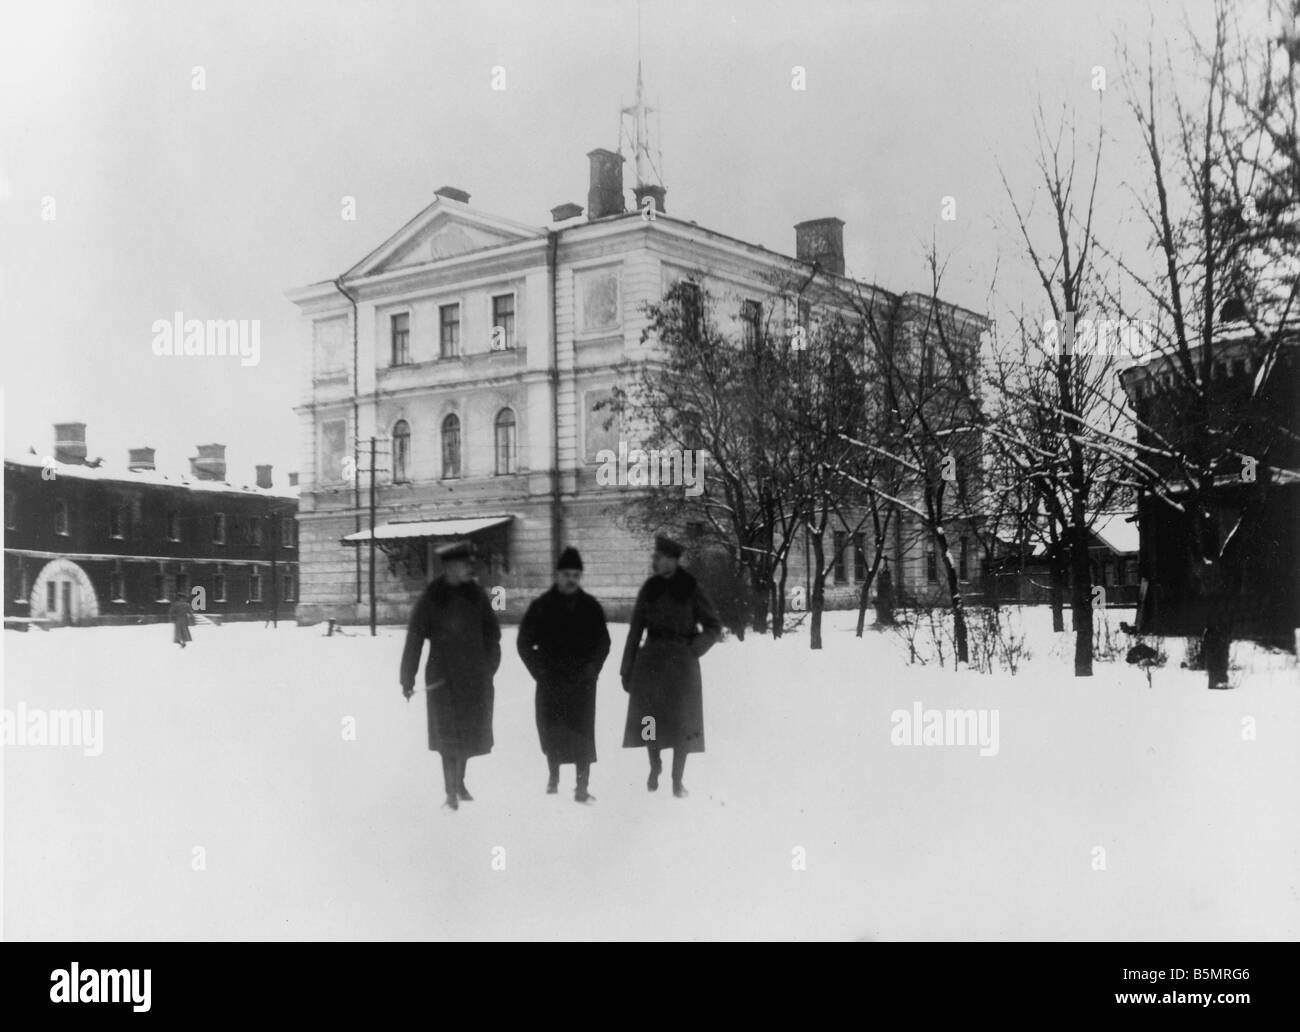 9 1917 12 15 A1 2 Conference buildings 1917 World War 1 1914 18 Russian German armistice of Brest Litowsk 15th December - Stock Image